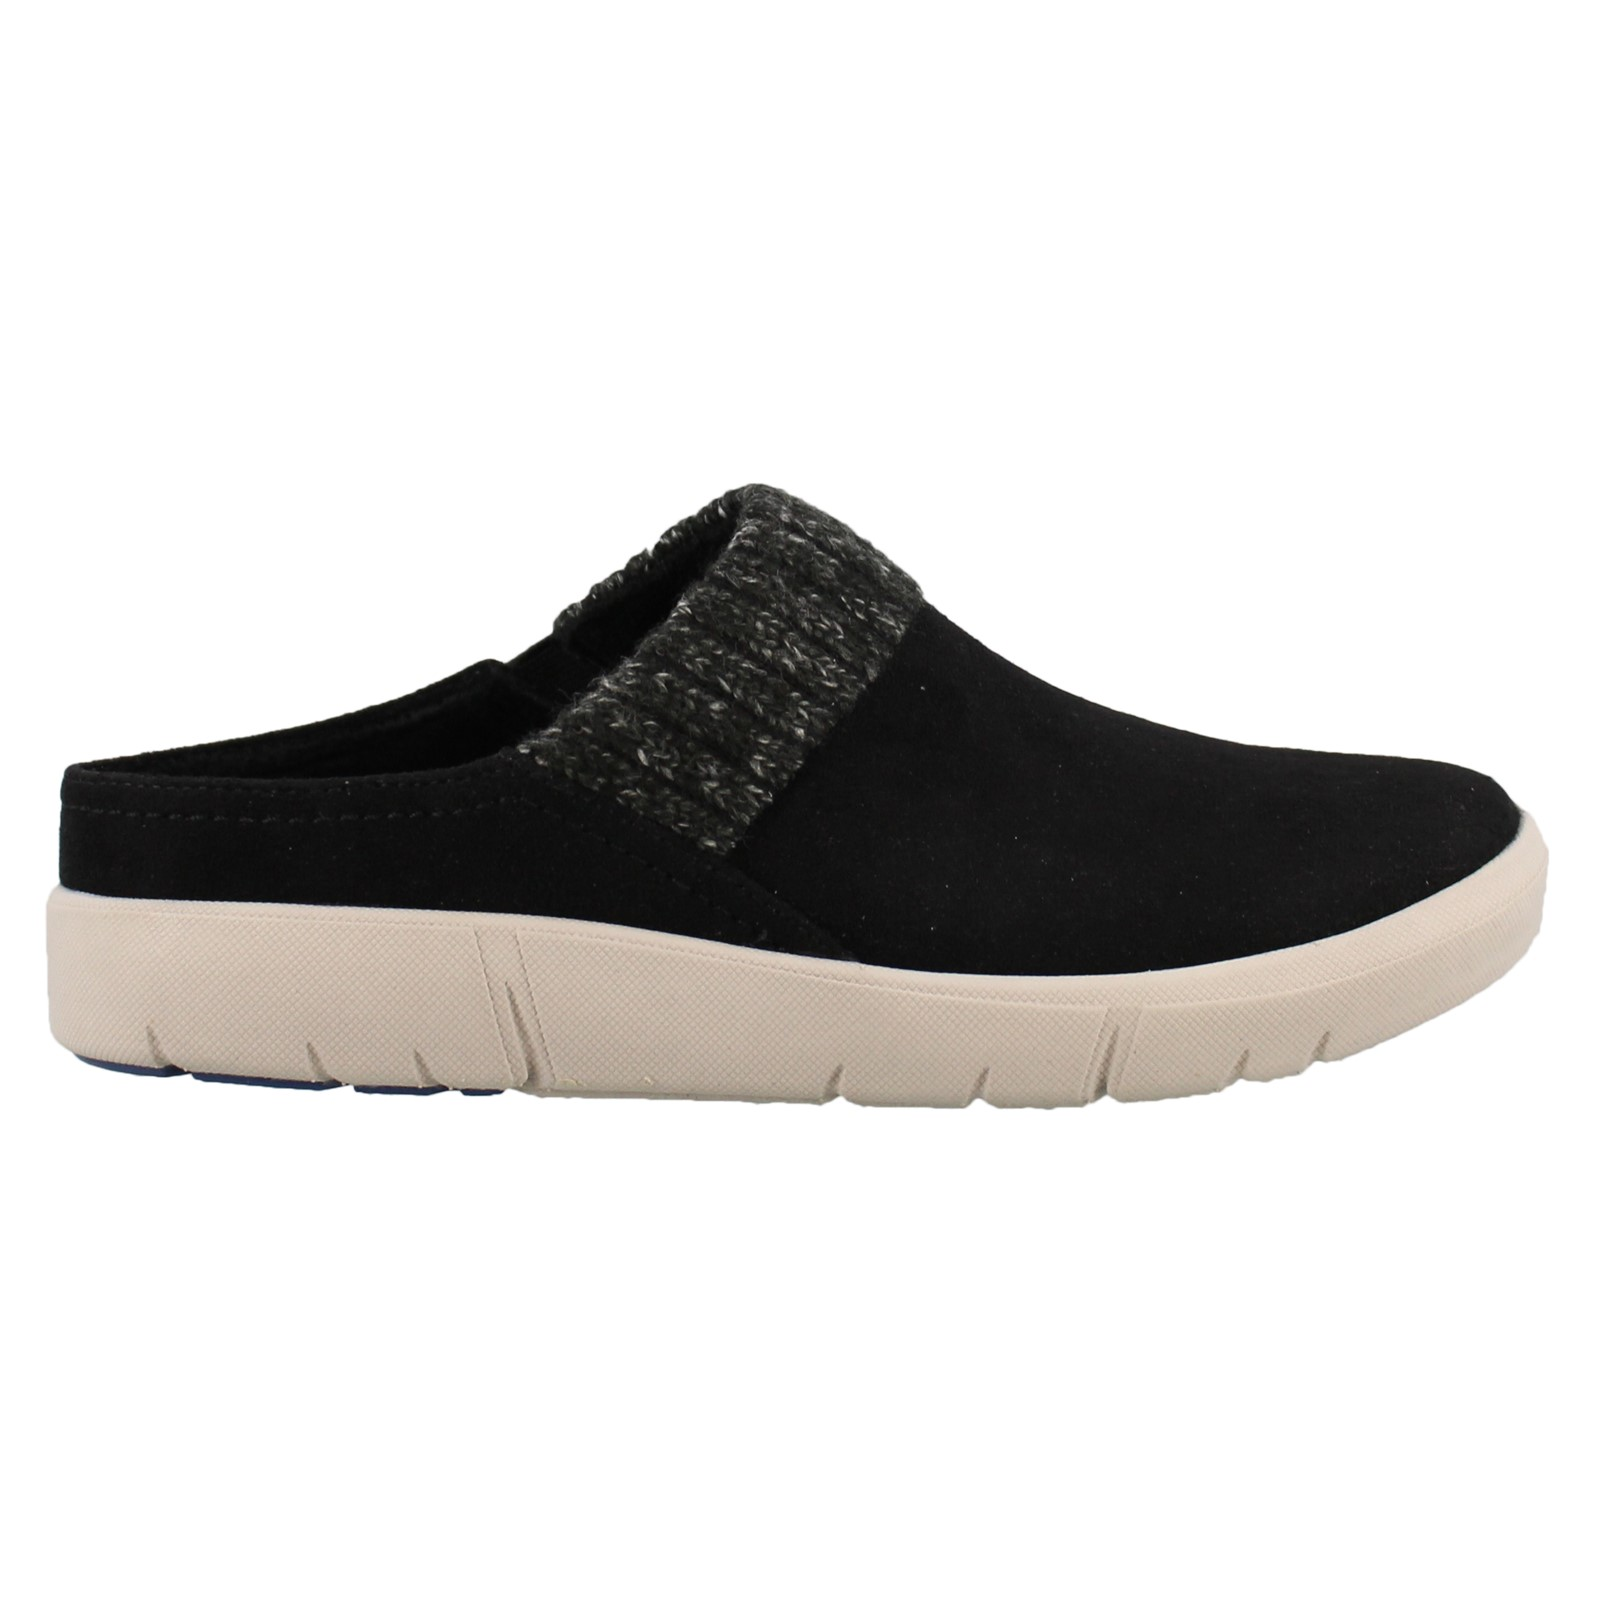 Women's Bare Traps, Barree Slip on Clogs